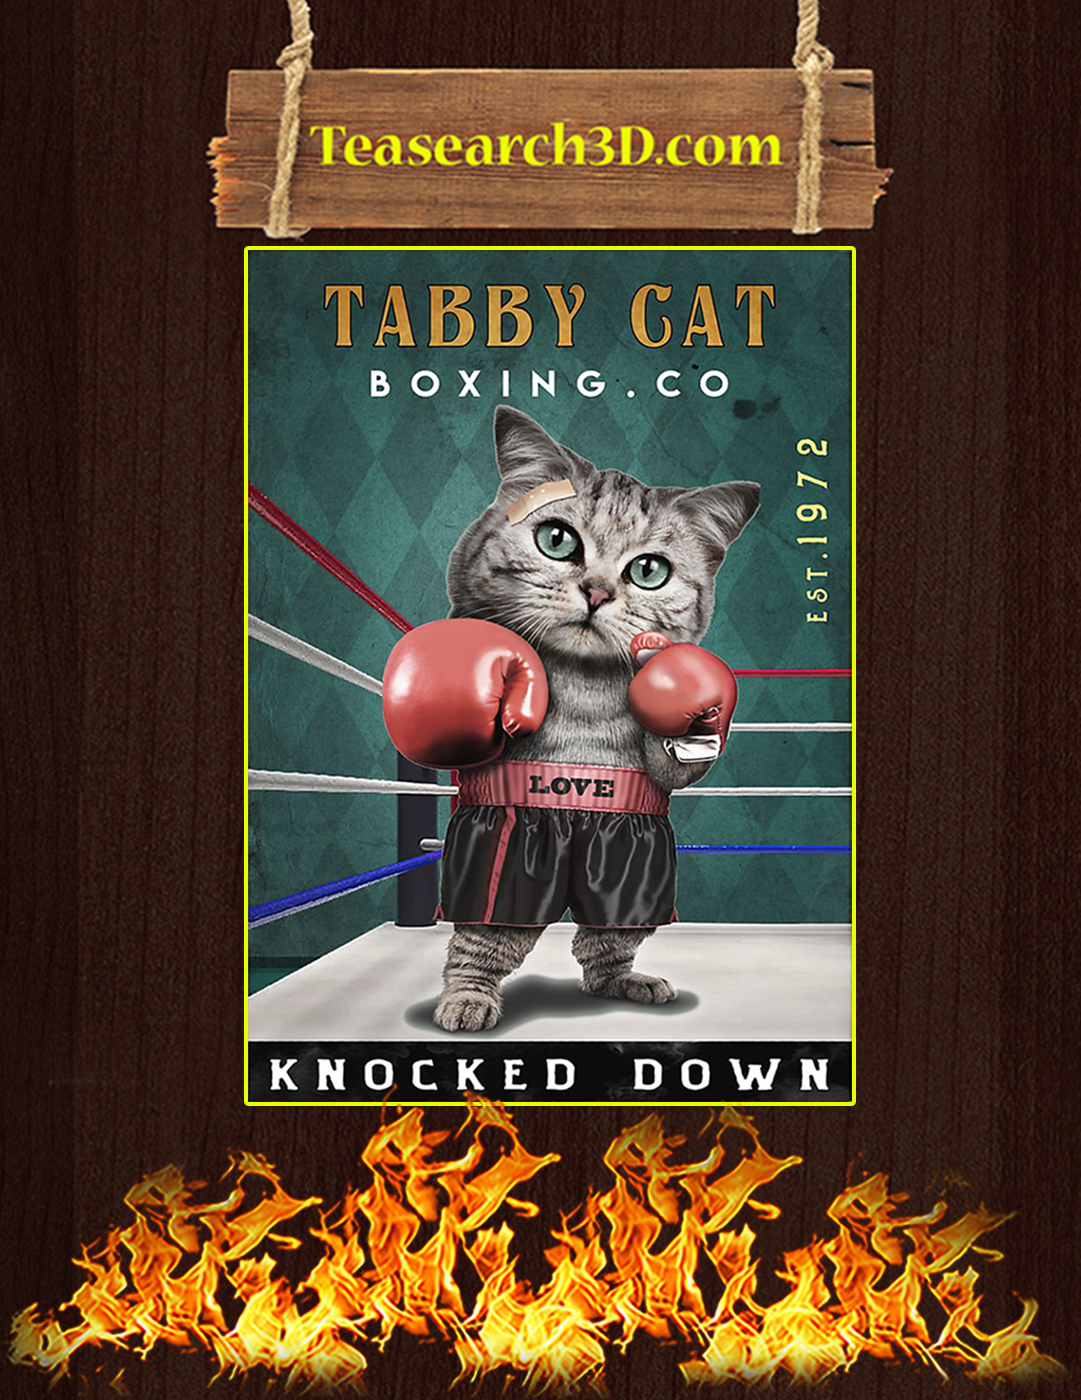 Tabby cat boxing co knocked down poster A2